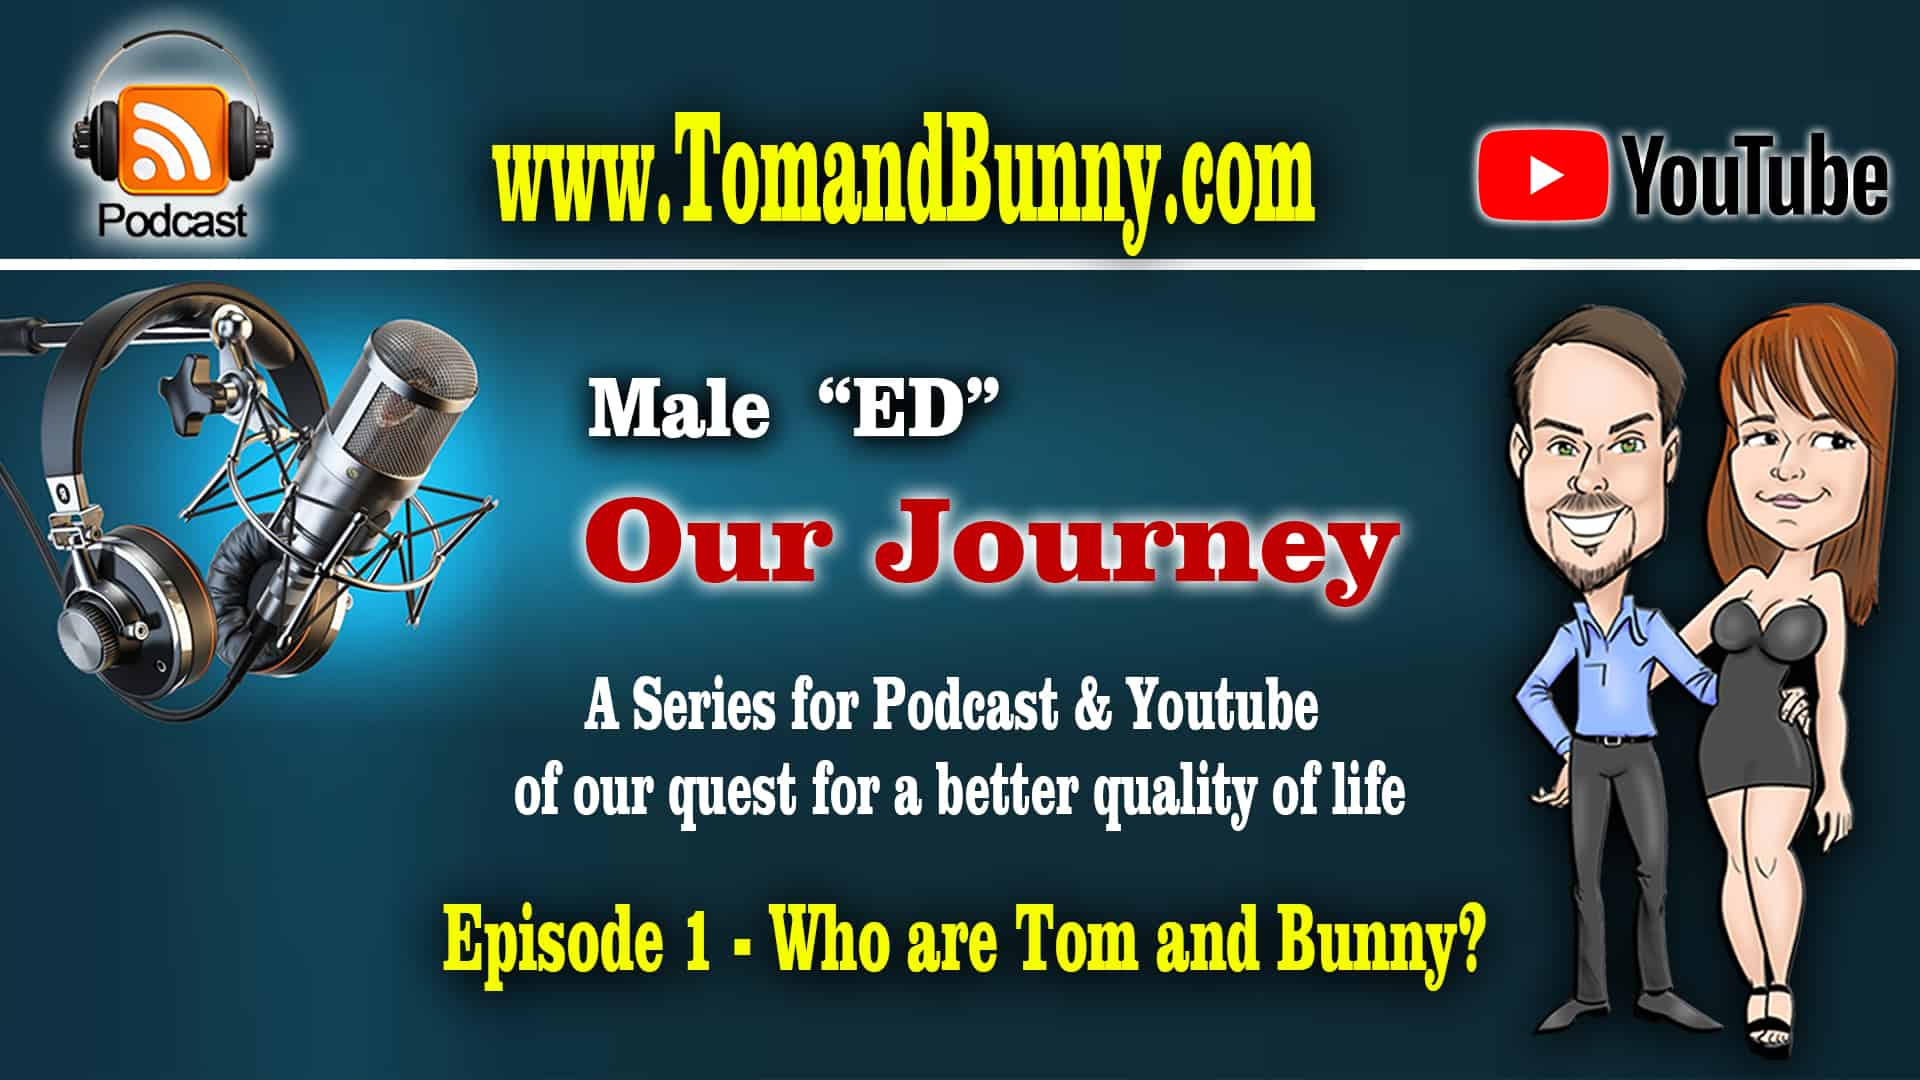 Episode 1 Male Erectile Dysfunction - Who are Tom and Bunny